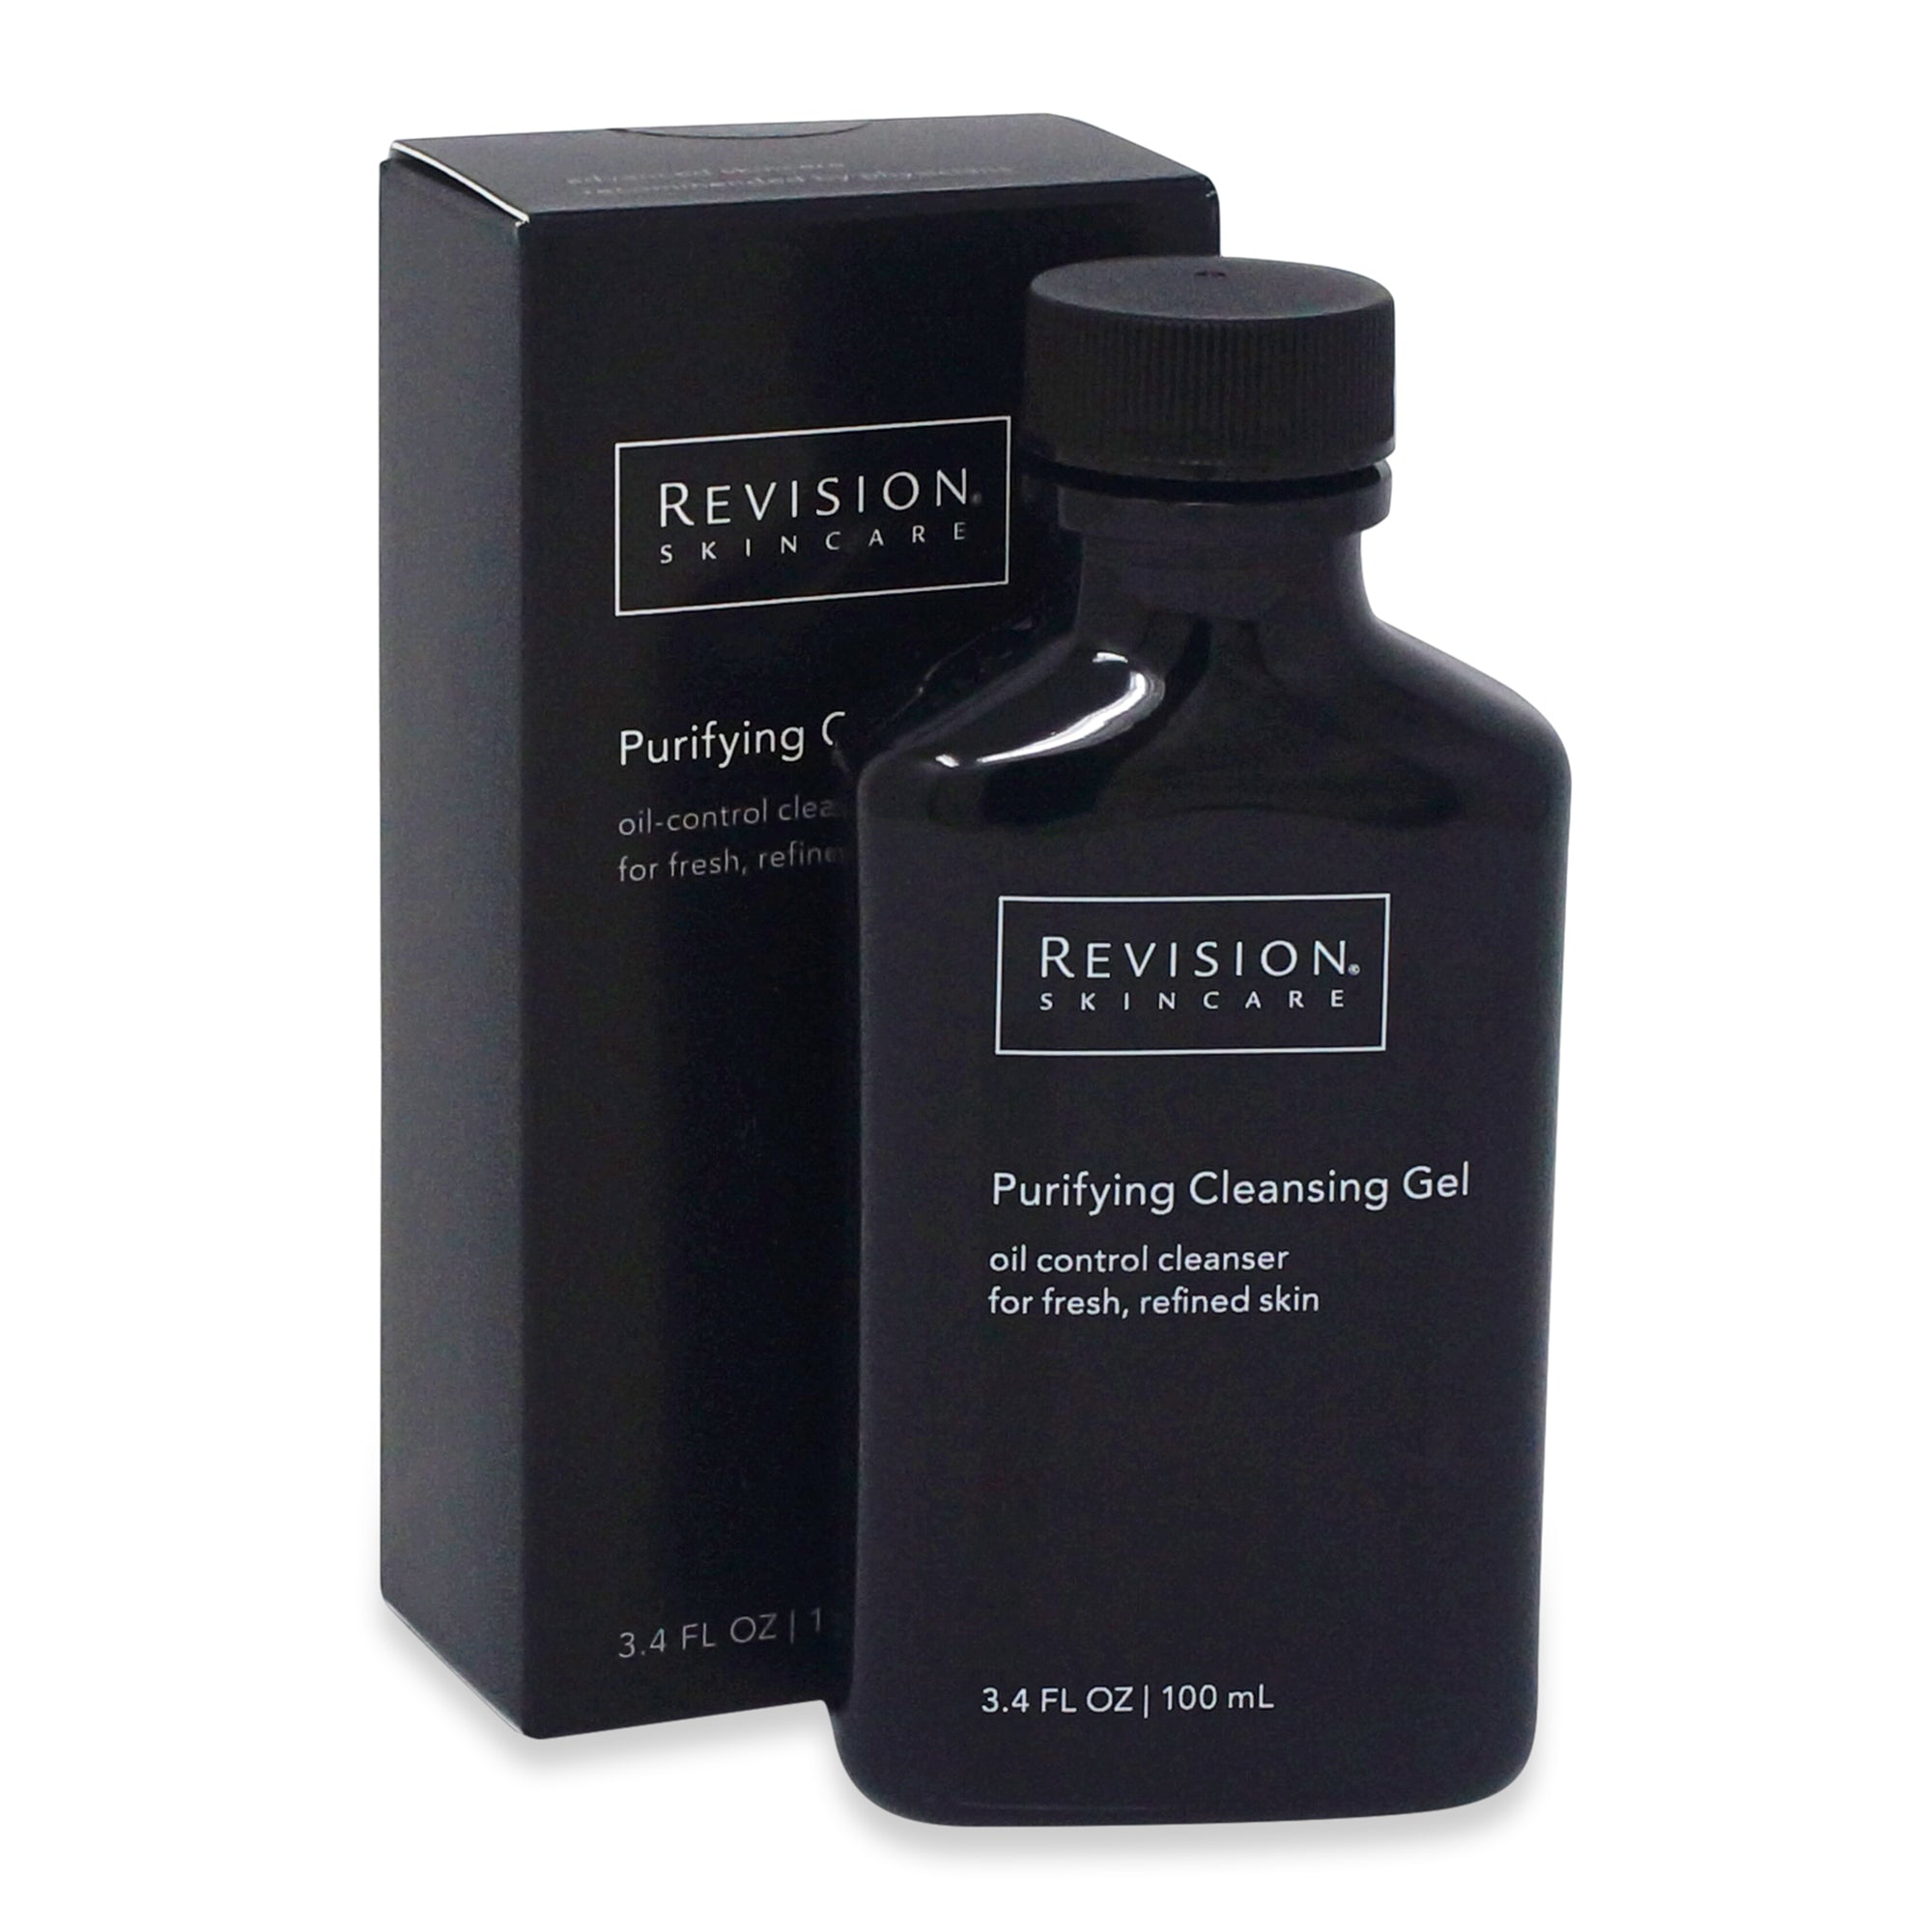 REVISION ~ PURIFYING CLEANSING GEL ~ 3.4 FL OZ BOTTLE